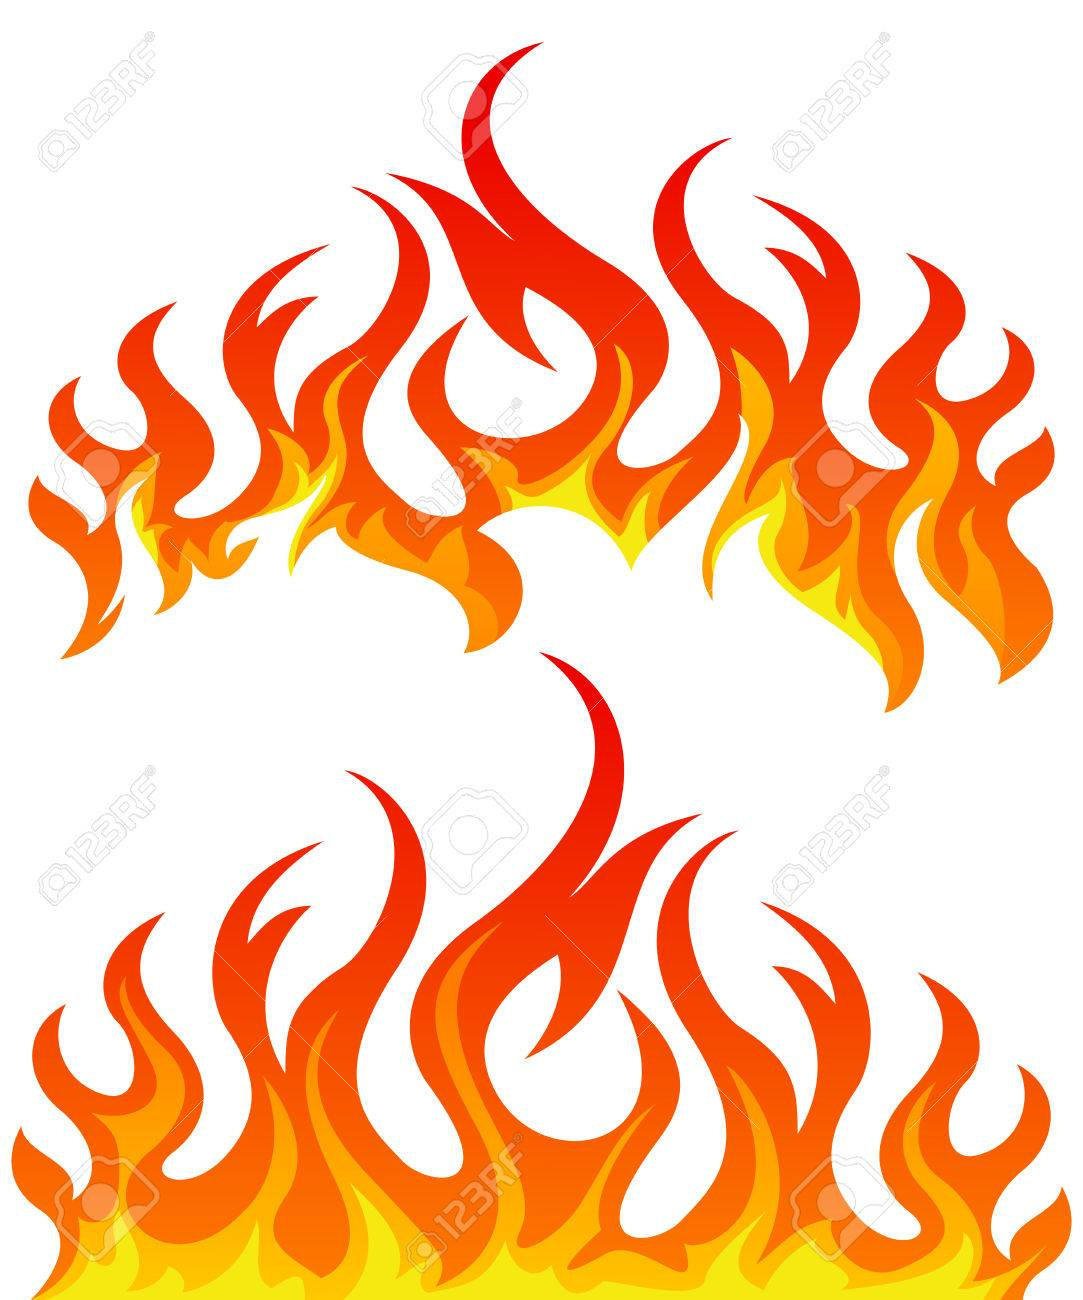 fire flames vector set on white background royalty free cliparts rh 123rf com flame vector clipart flames victoria park